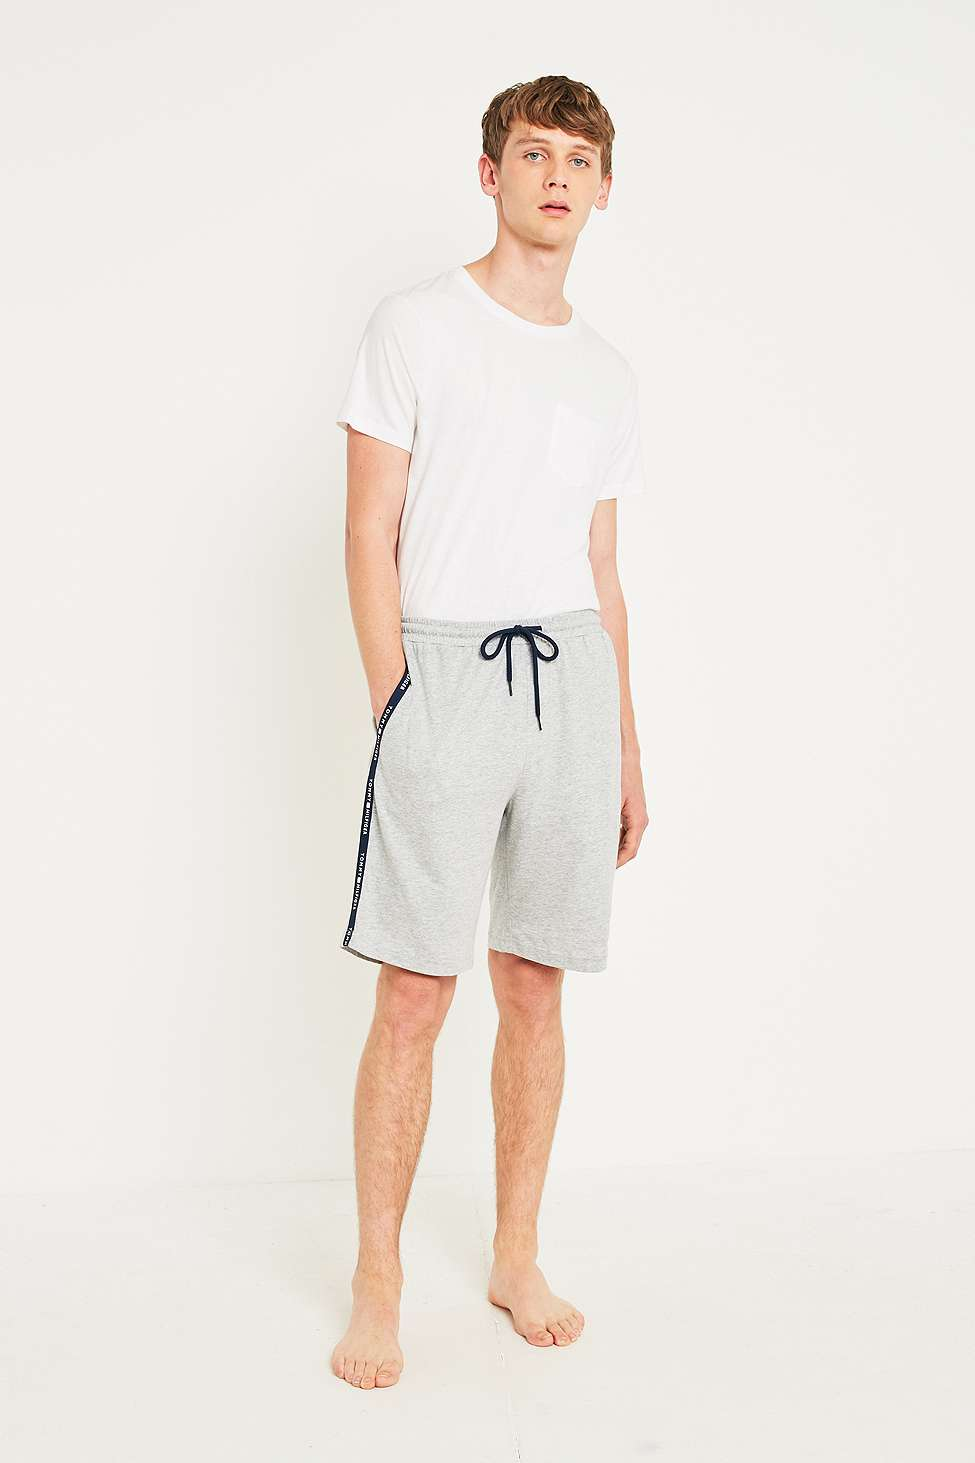 Tommy Hilfiger Grey Shorts, Grey